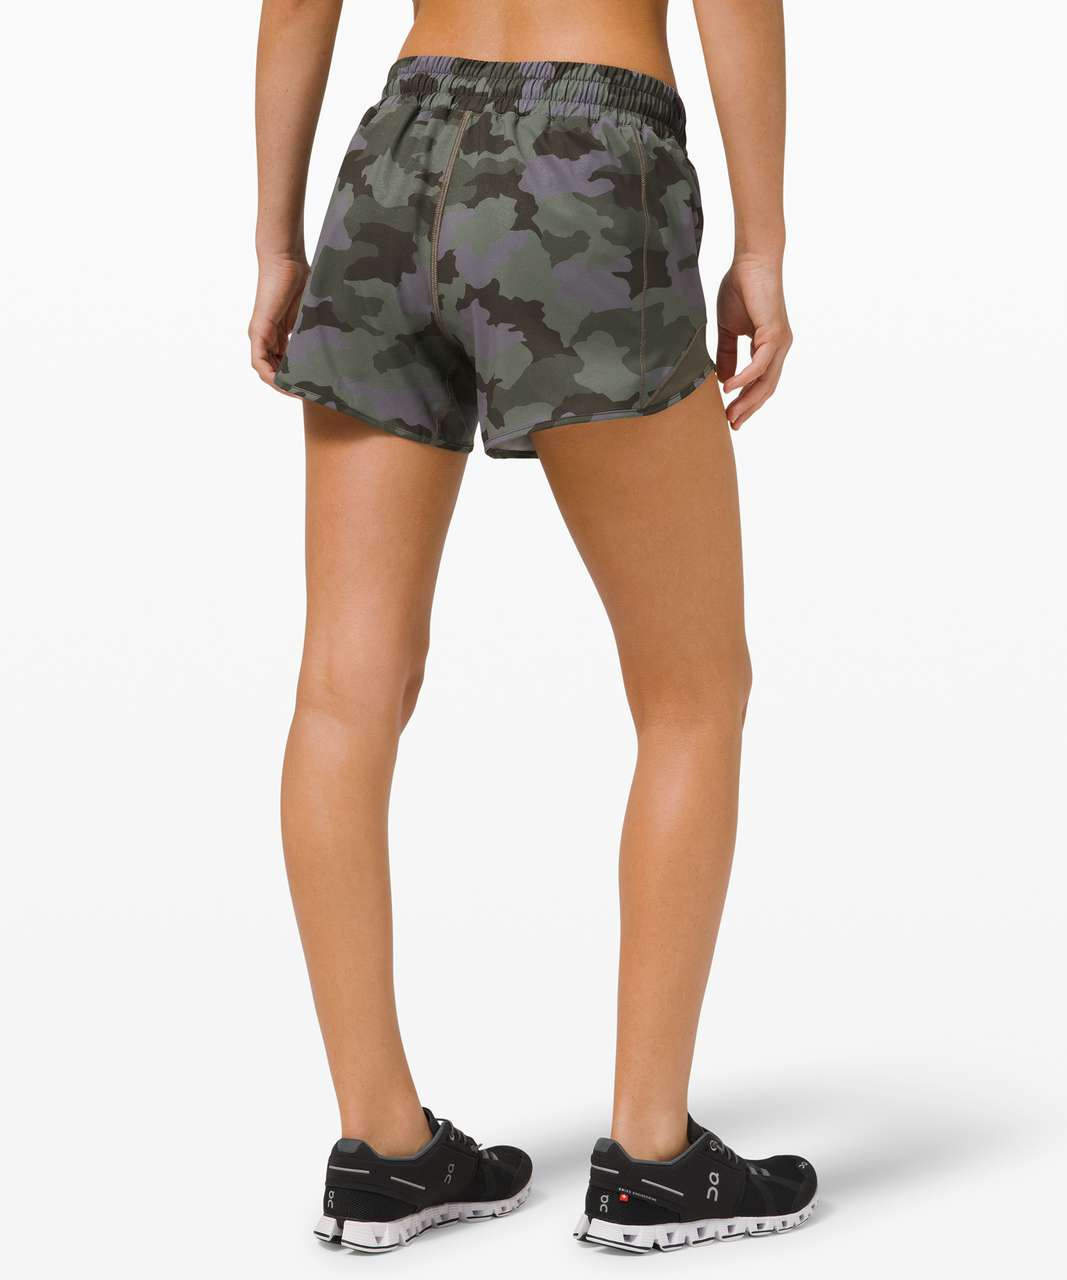 "Lululemon Hotty Hot Short II *Long 4"" - Heritage 365 Camo Dusky Lavender Multi / Army Green"